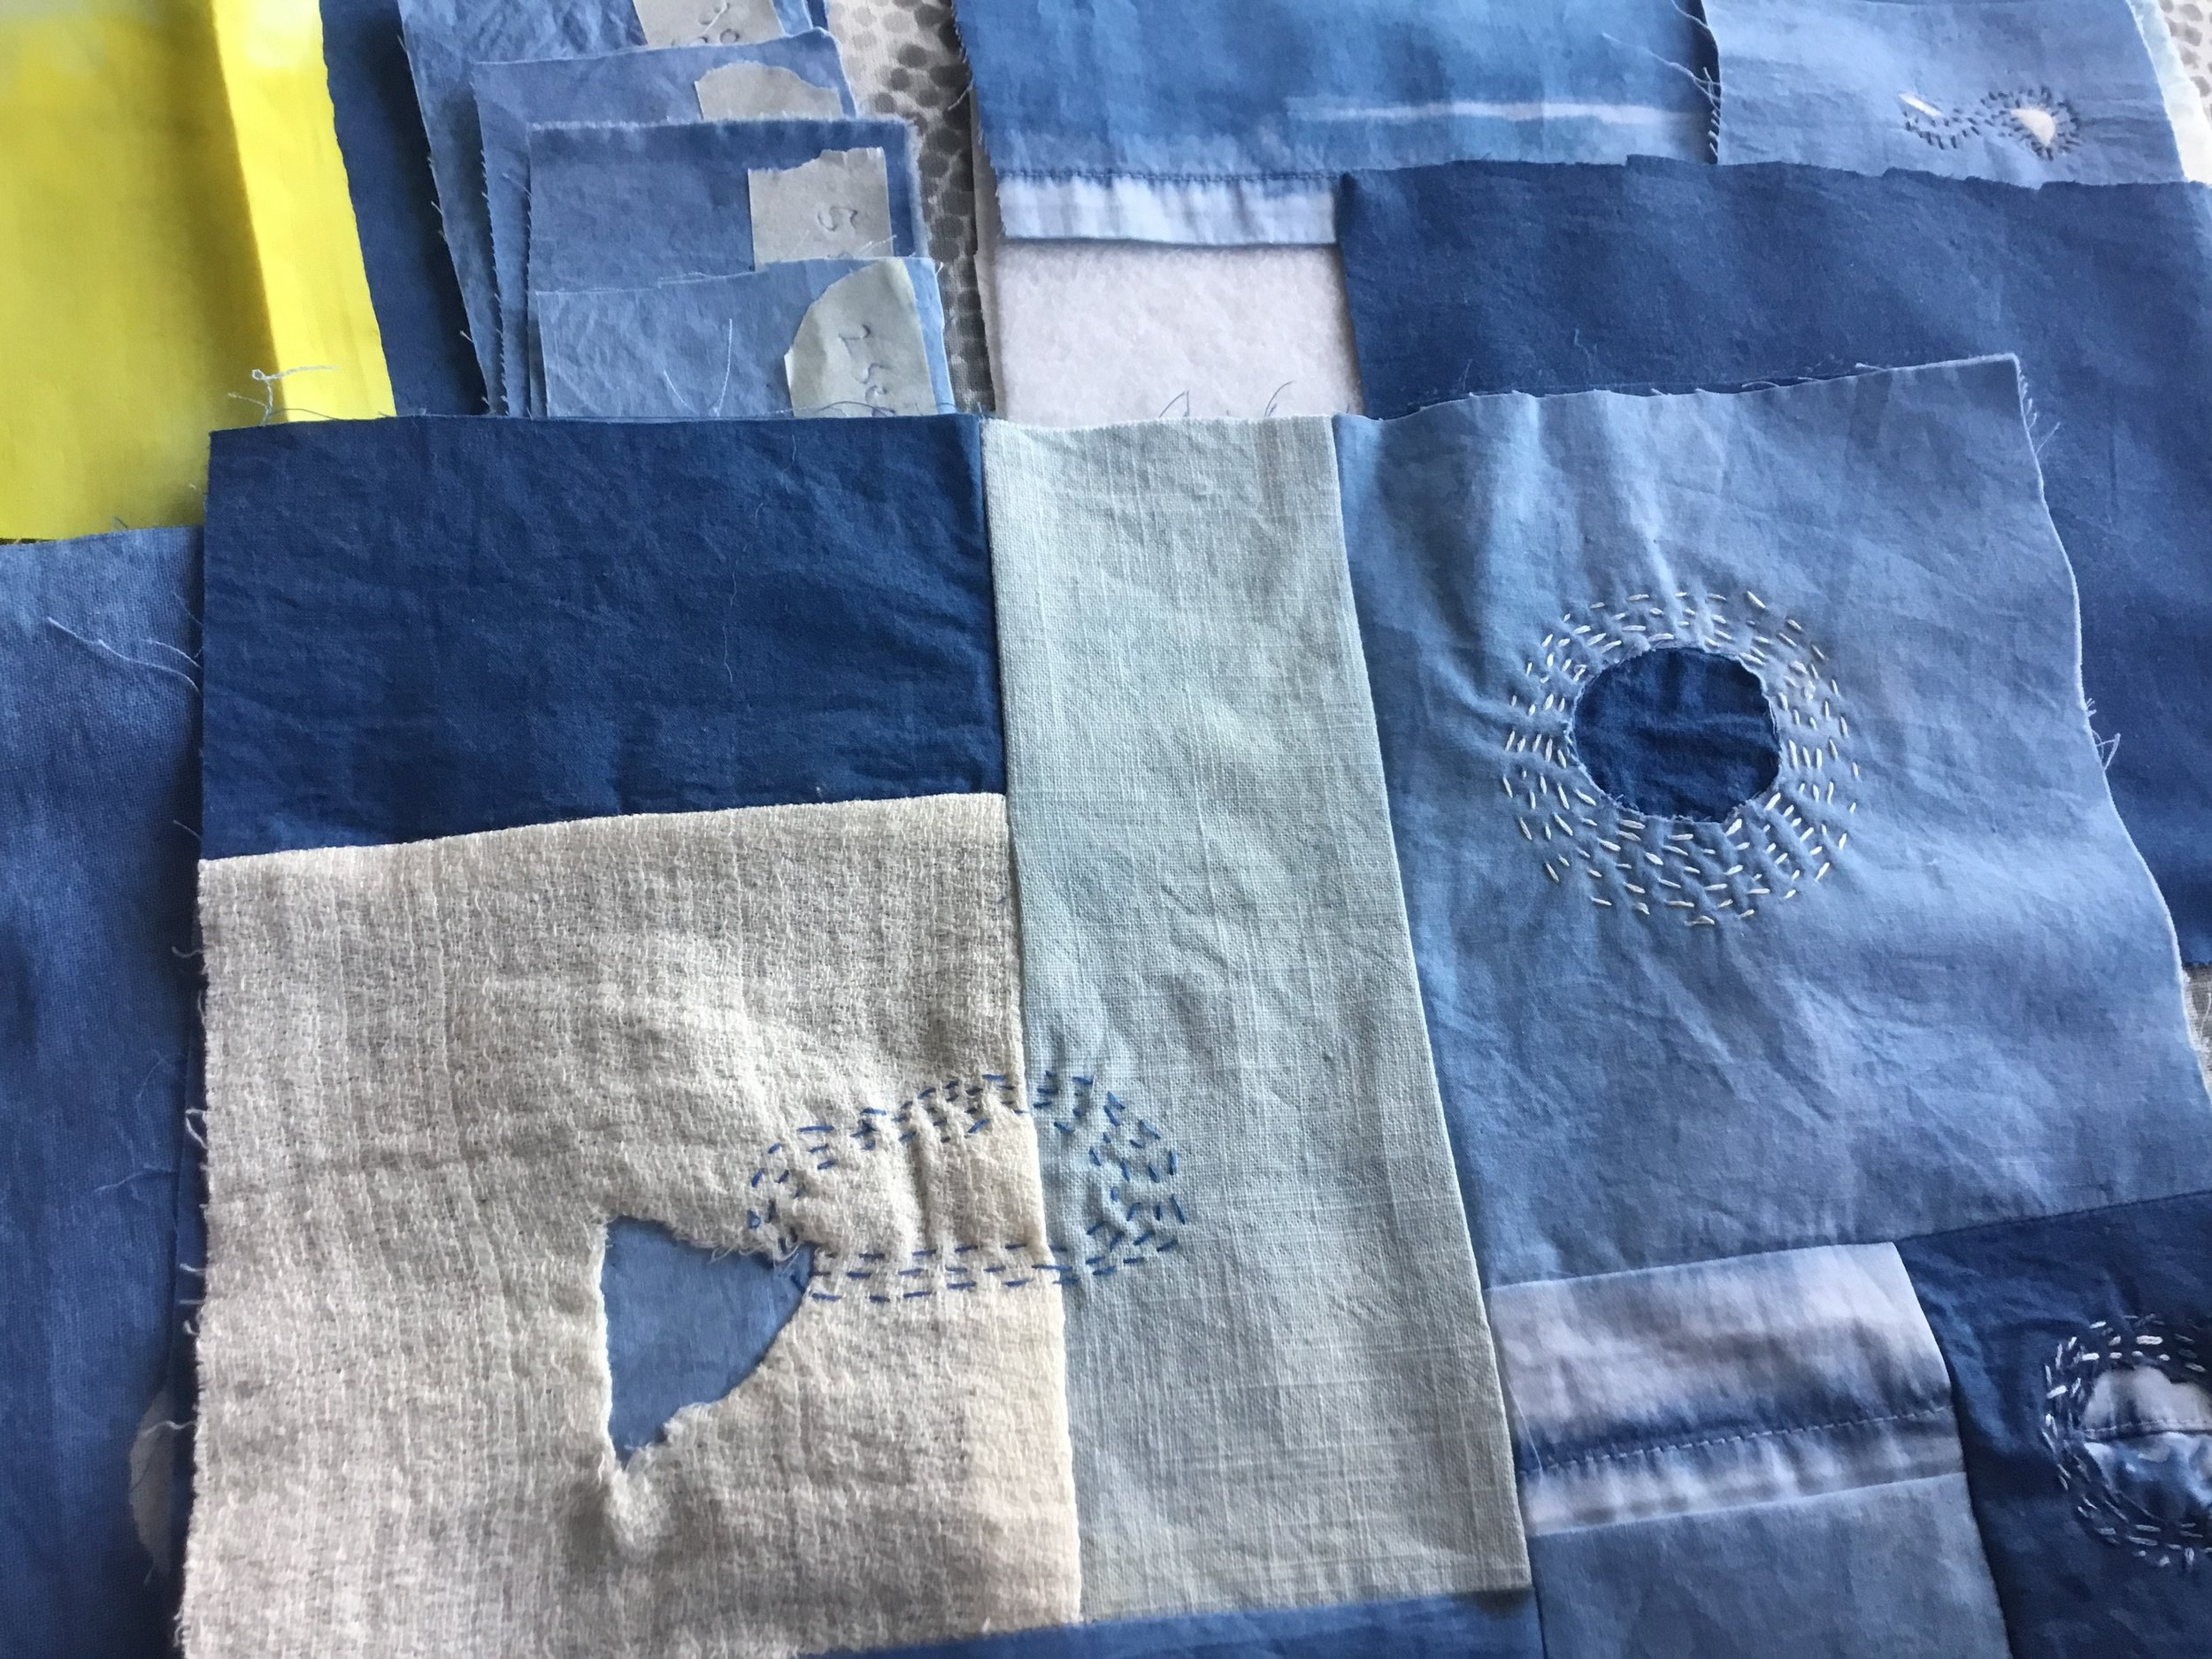 Indigo dye cotton and linen with Boro stitching, 2018